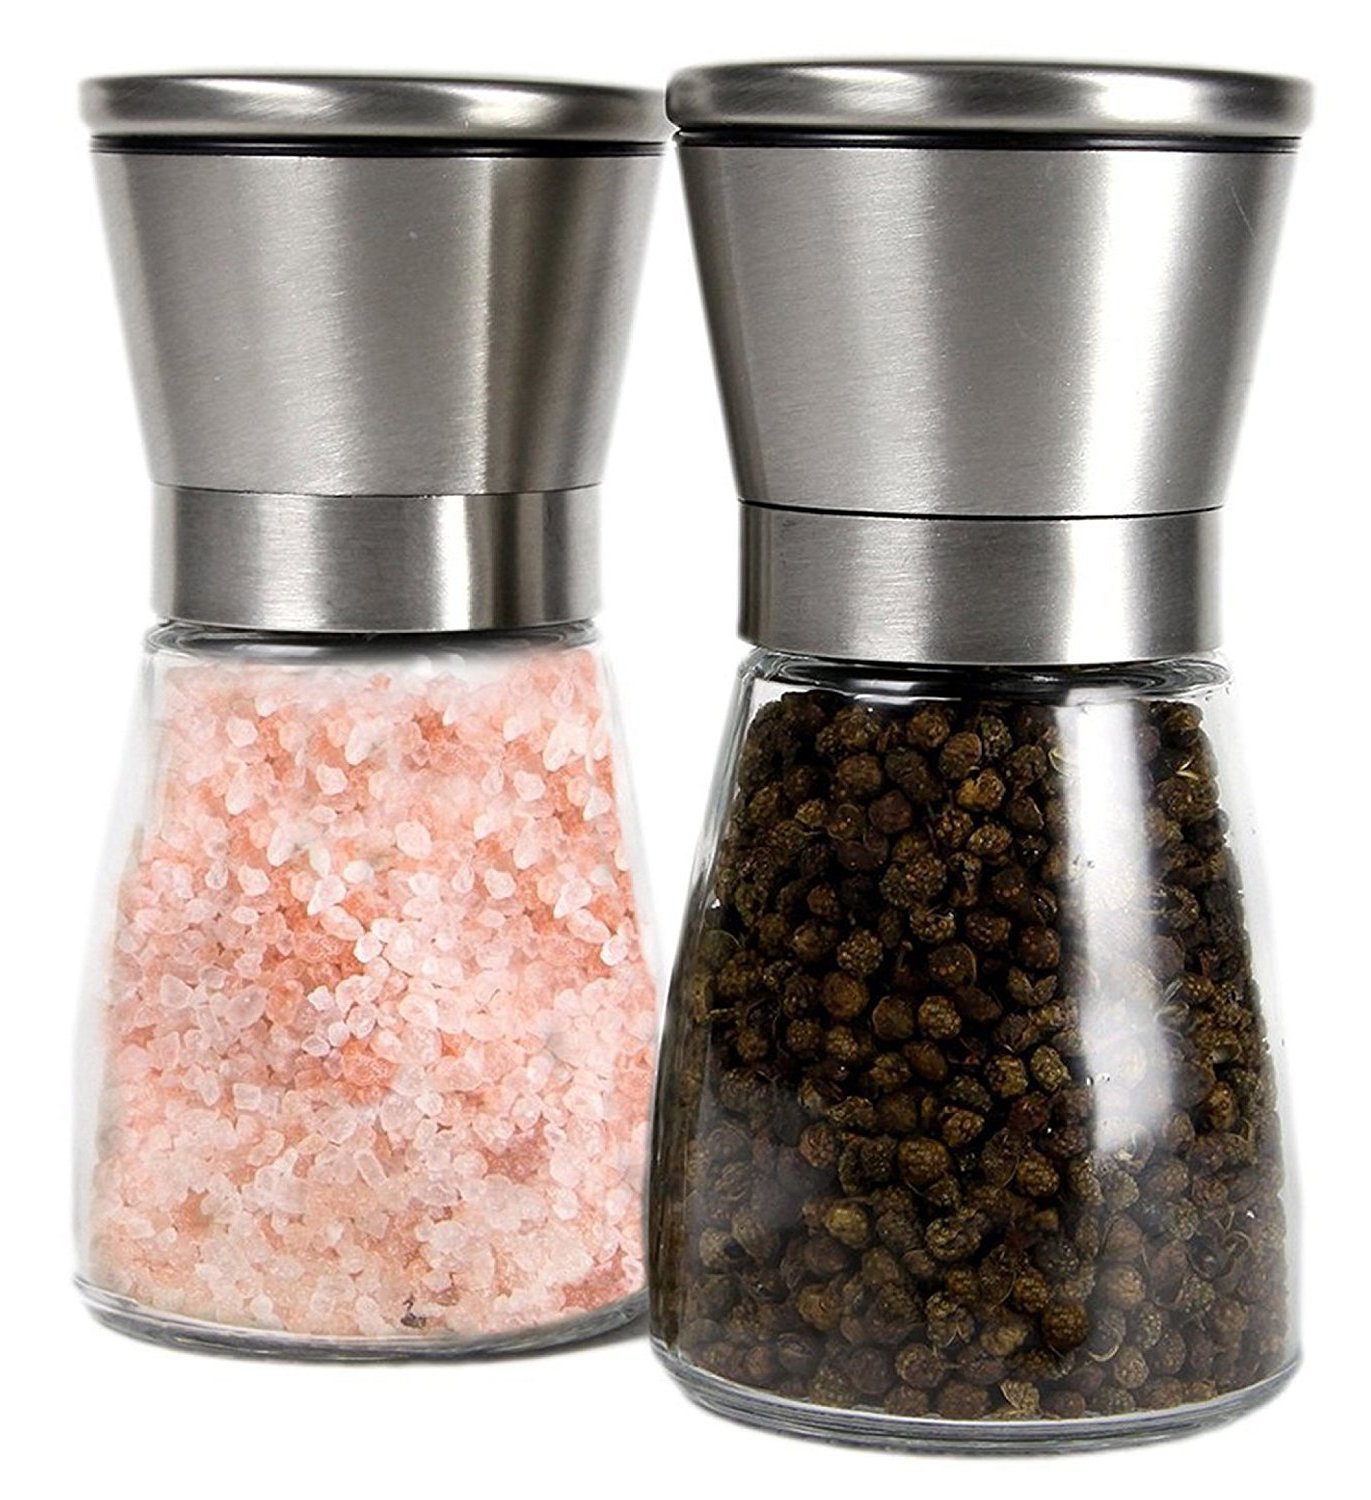 premium stainless steel salt and pepper grinder set. Black Bedroom Furniture Sets. Home Design Ideas